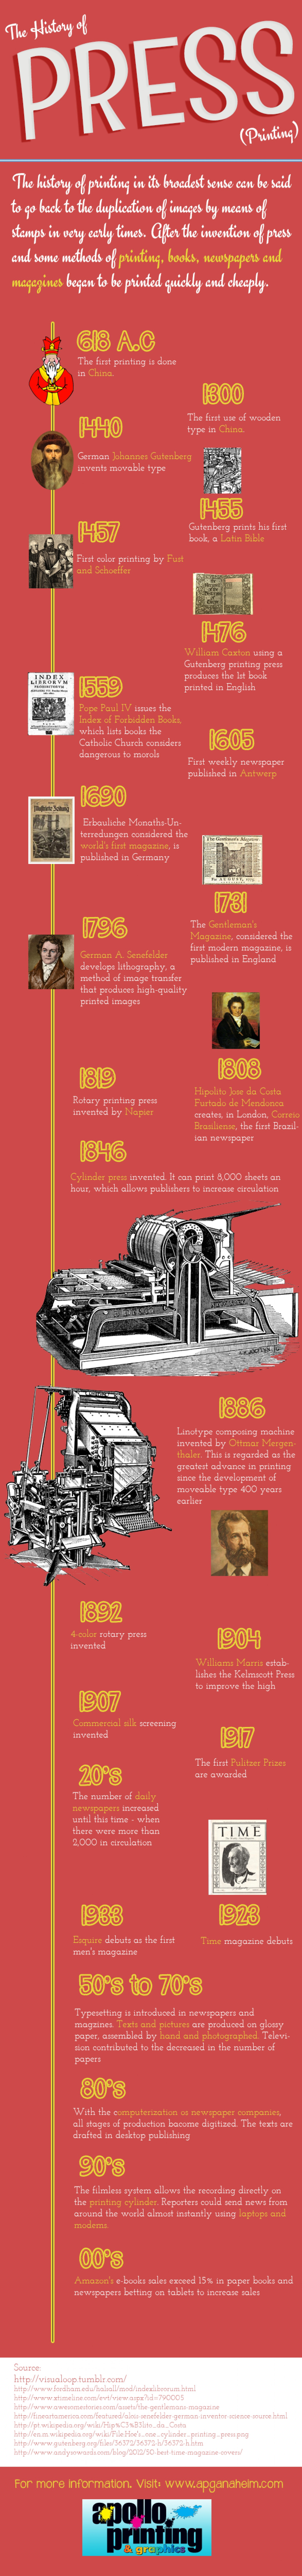 the-history-of-press-printing_52544b78d401d_w1500.png